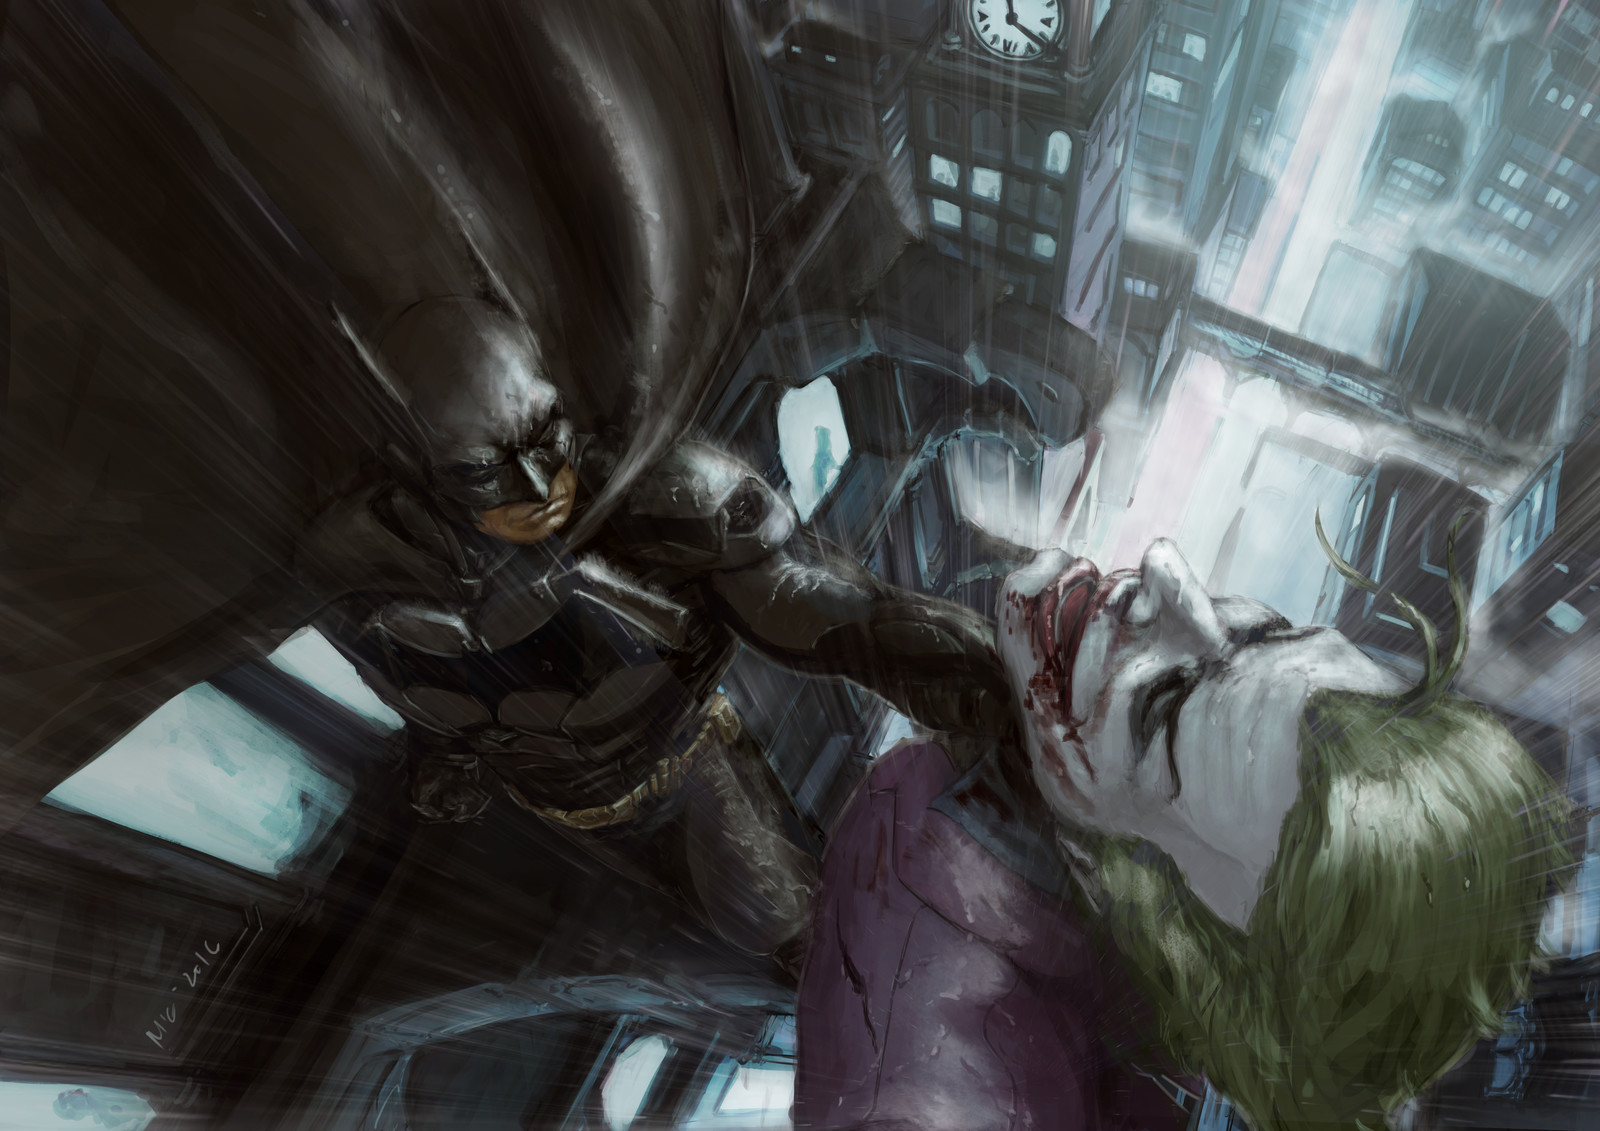 bats and joker in the rain, being all romantic